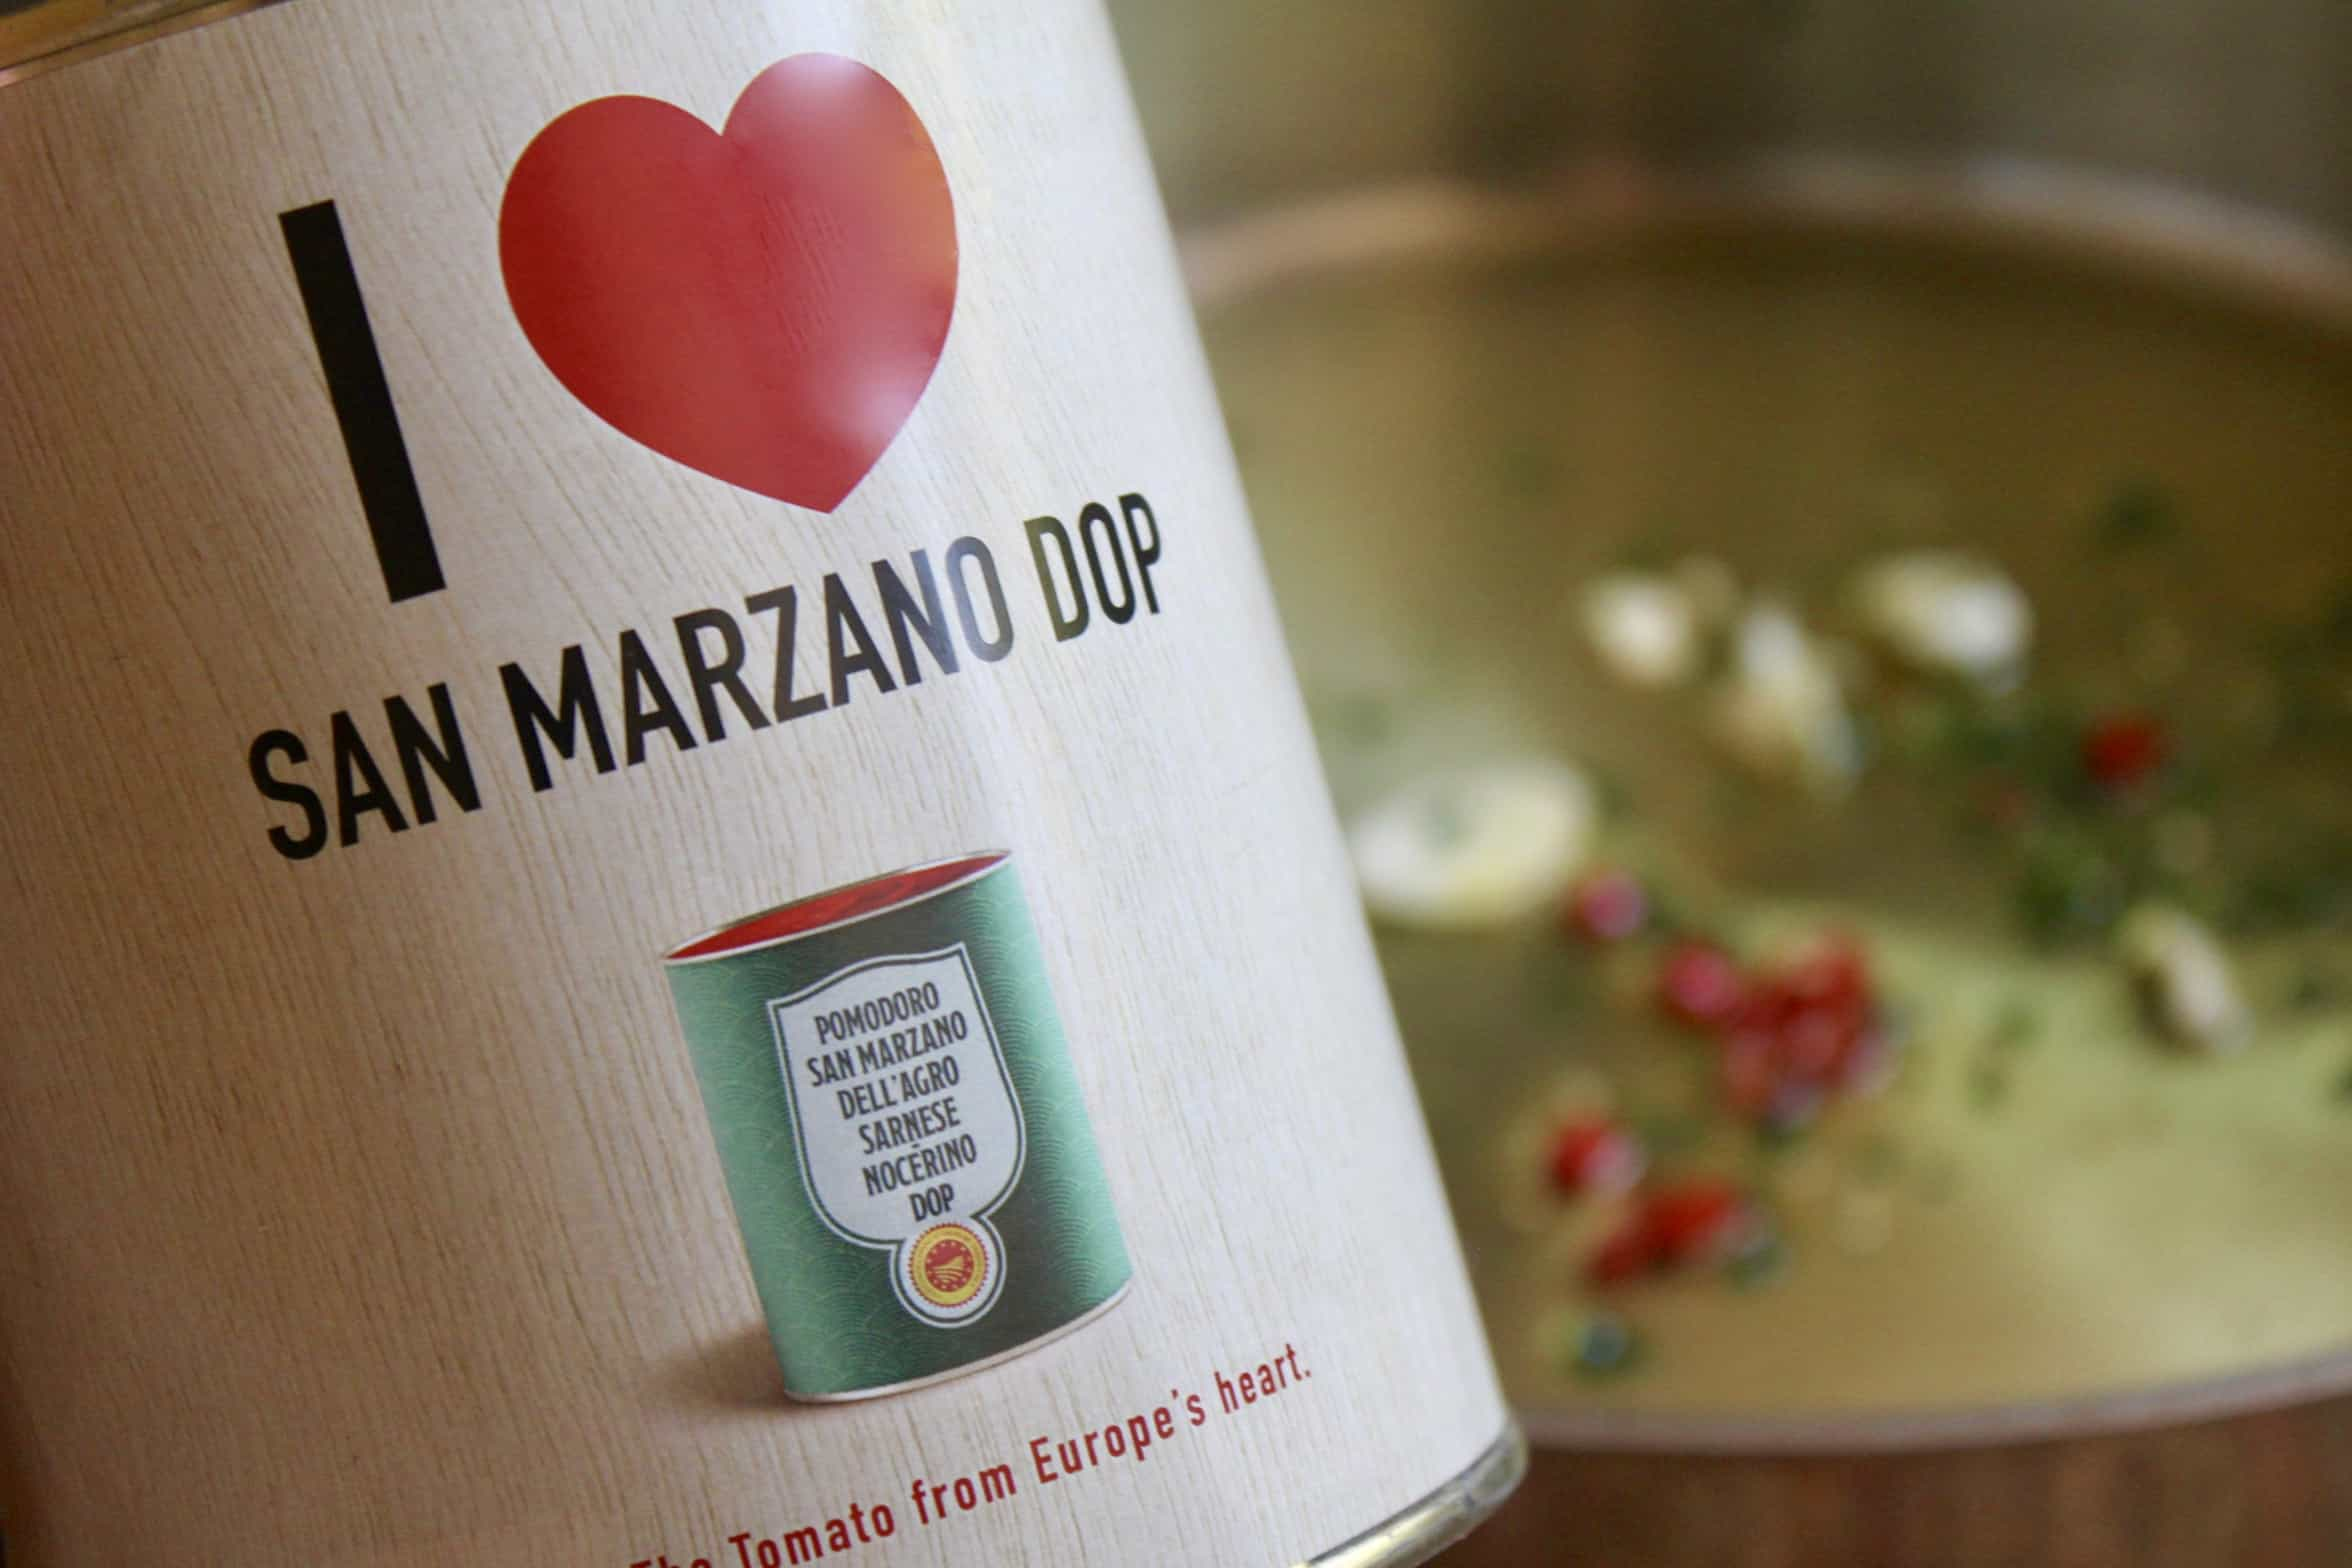 can of tomatoes with I love san marzano dop